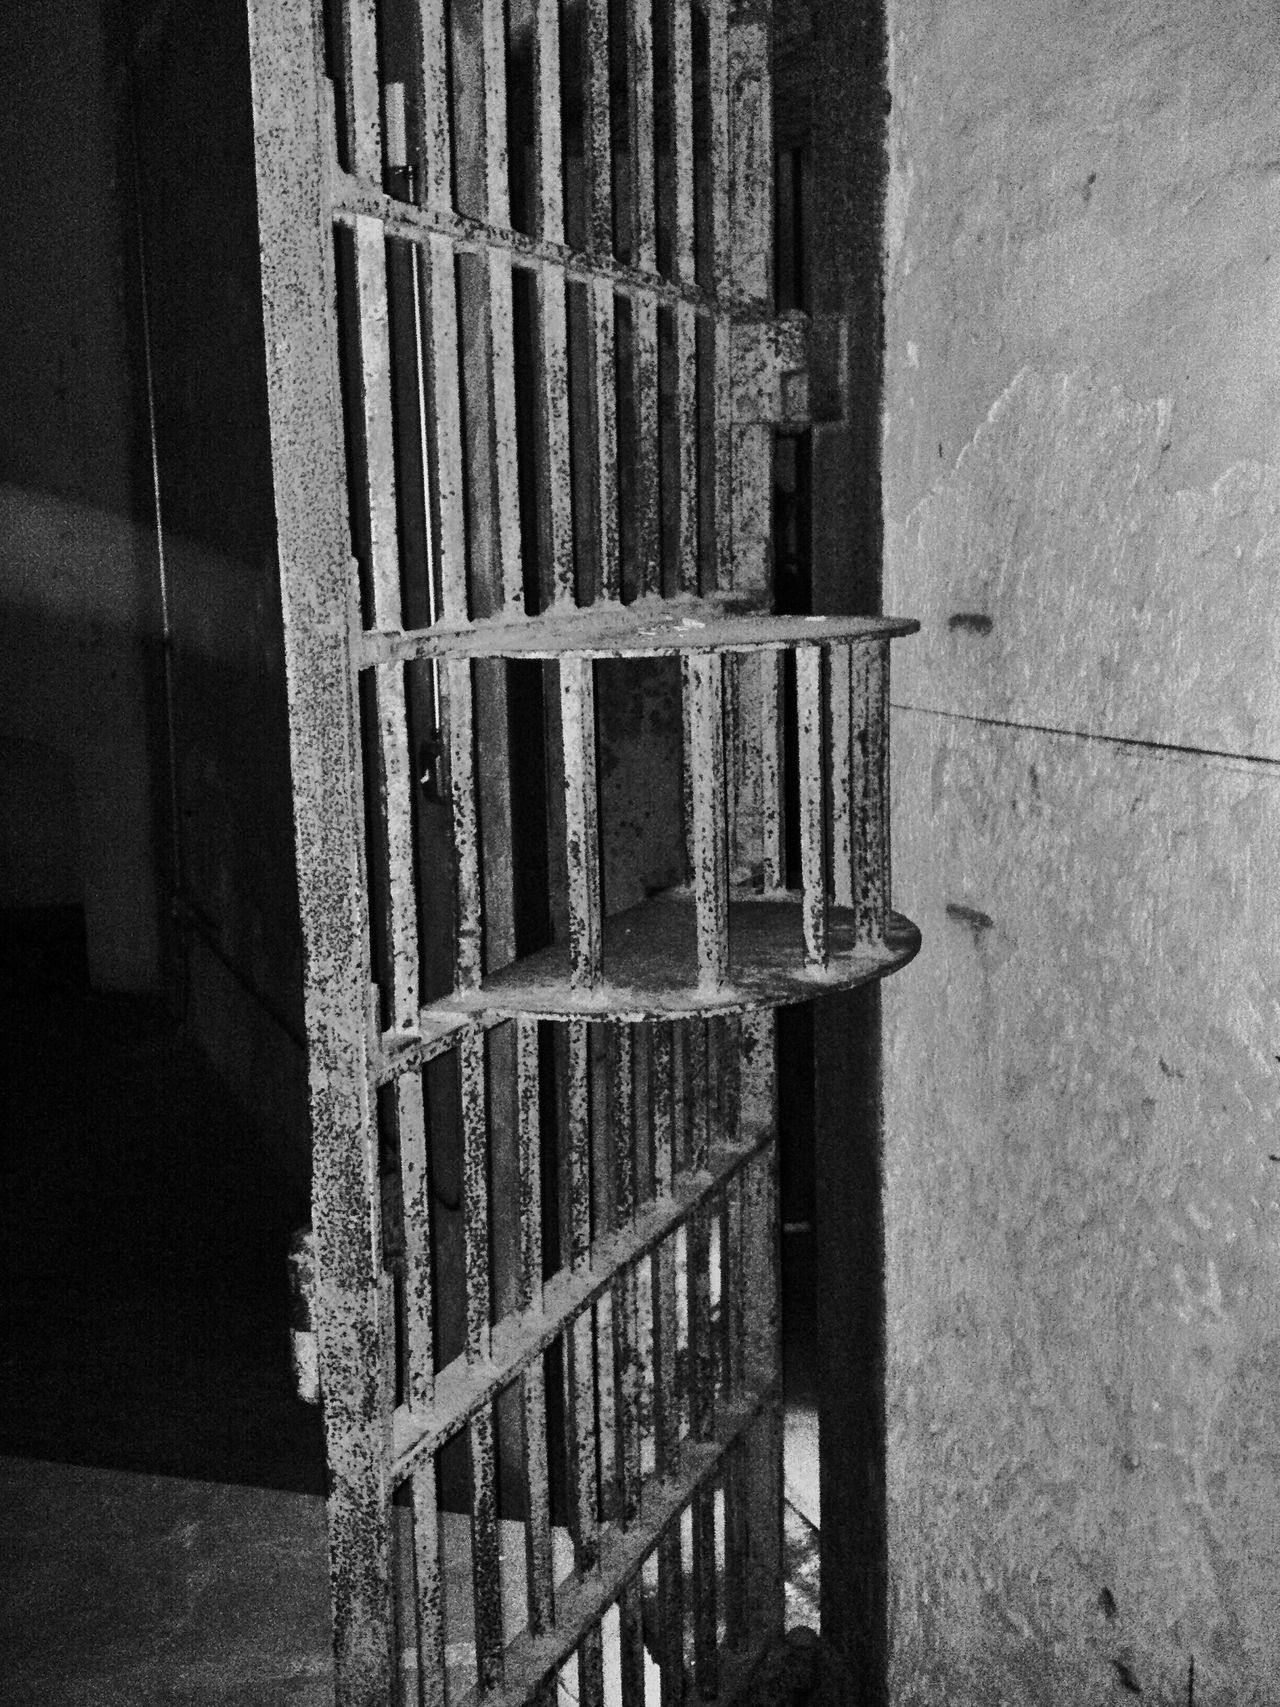 Charleston Haunted Prision 5 Prision Bars